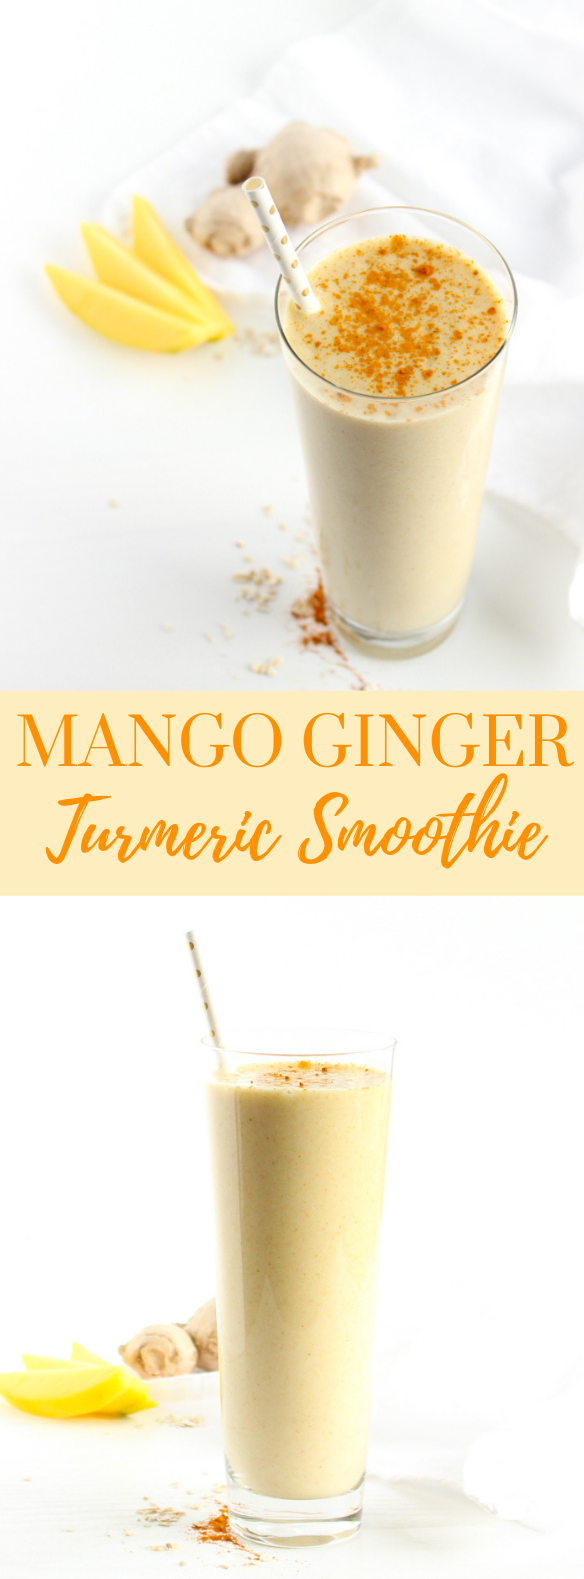 MANGO GINGER TURMERIC SMOOTHIE #healthydrink #smoothies